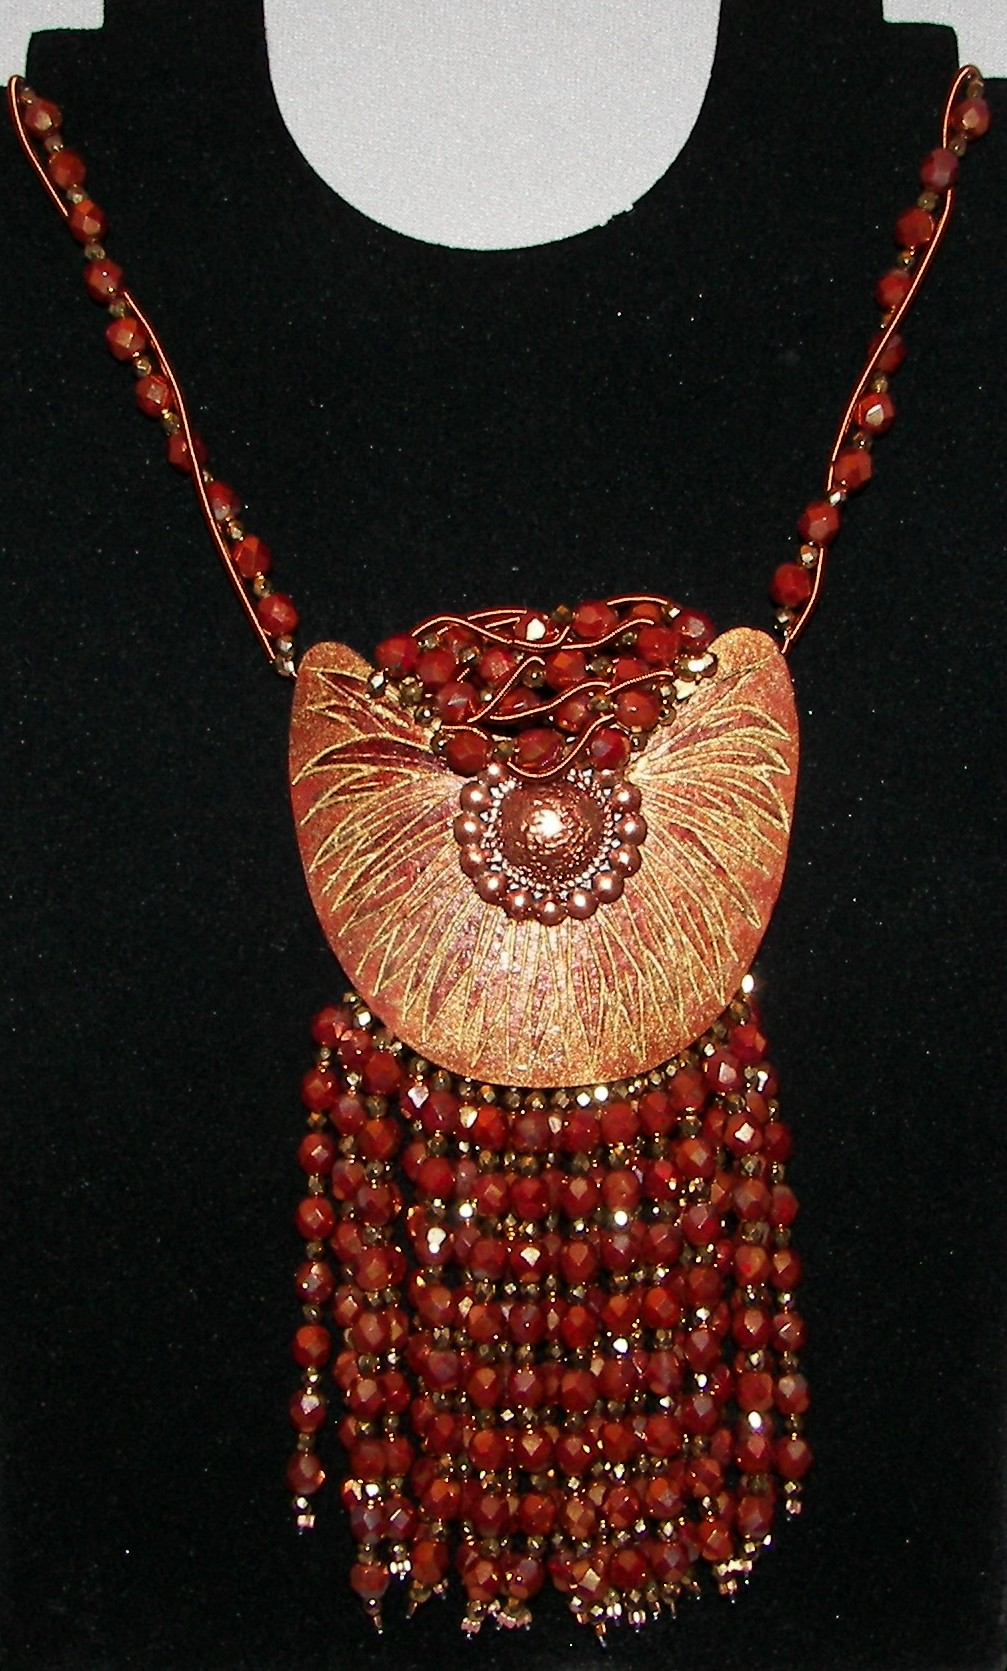 gourd-jewelry-starburst-copper-and-gold-5-09